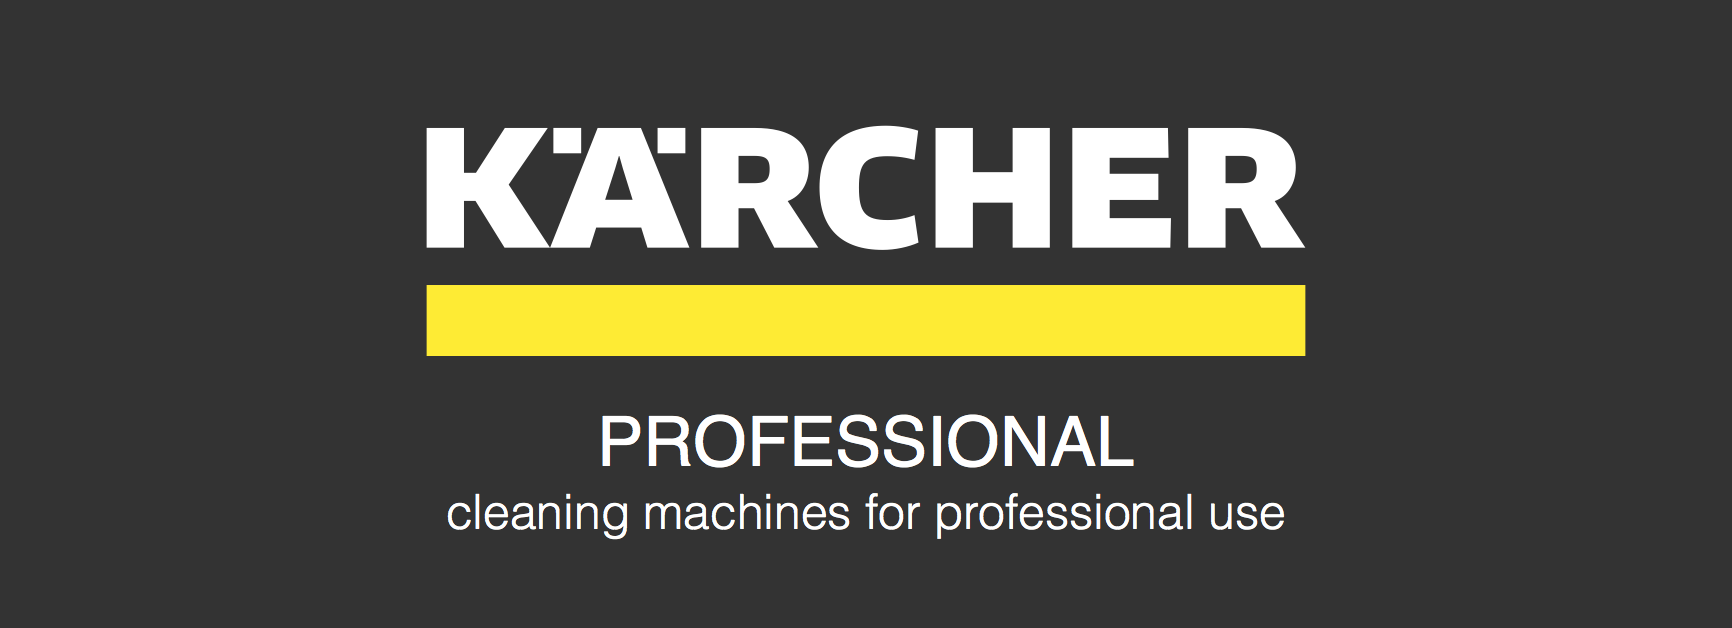 karcher-pro with IVS